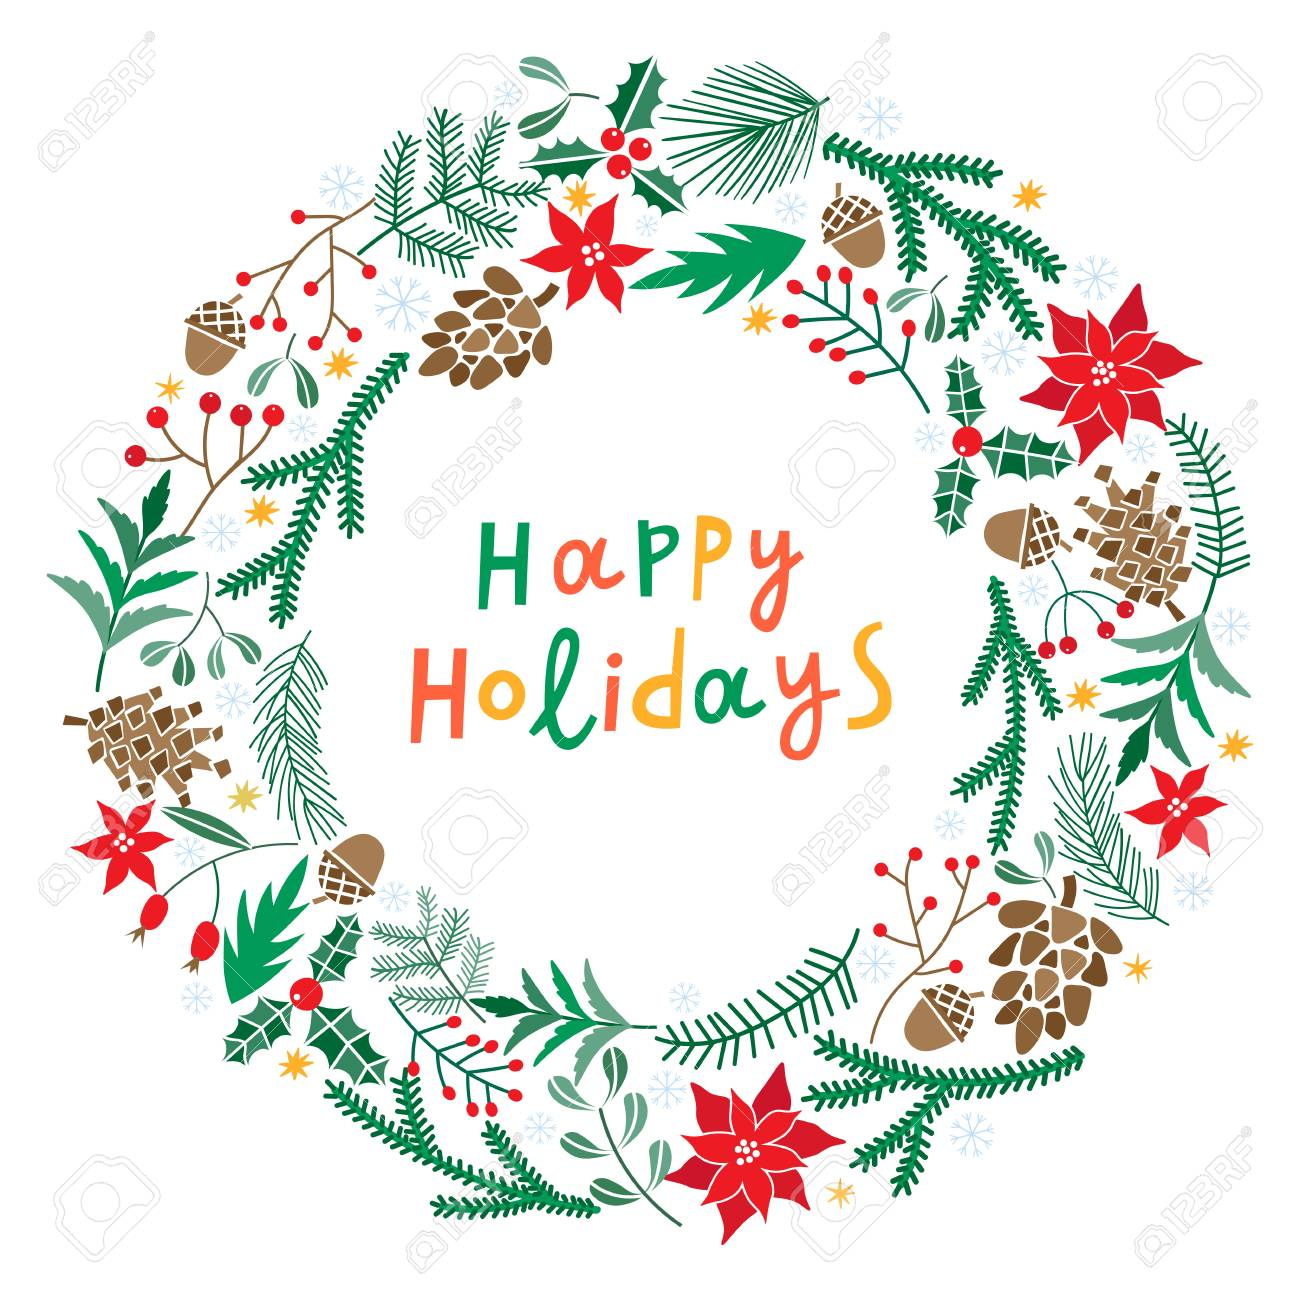 Happy Holidays Wreath With Berries Fir Branches Round Frame Royalty Free Cliparts Vectors And Stock Illustration Image 91100031